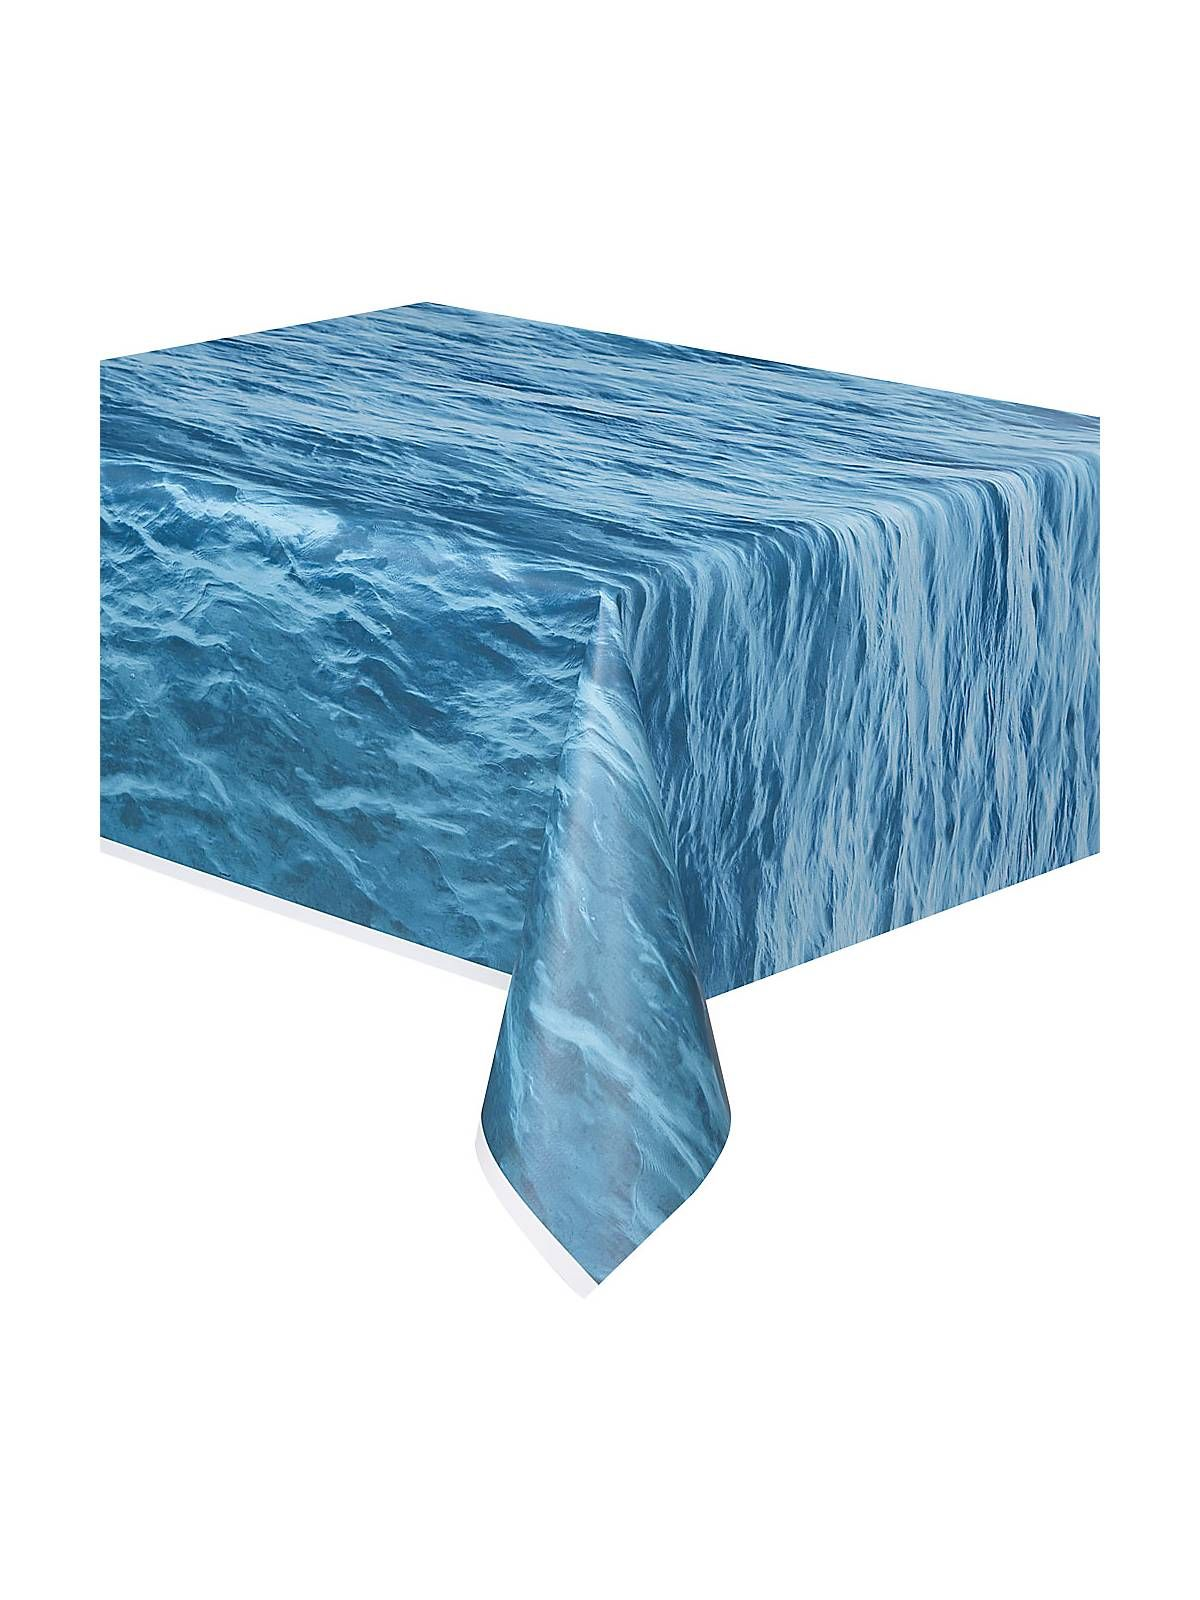 Water Print Plastic Table Cover Each Party Table Cloth Plastic Table Covers Table Covers